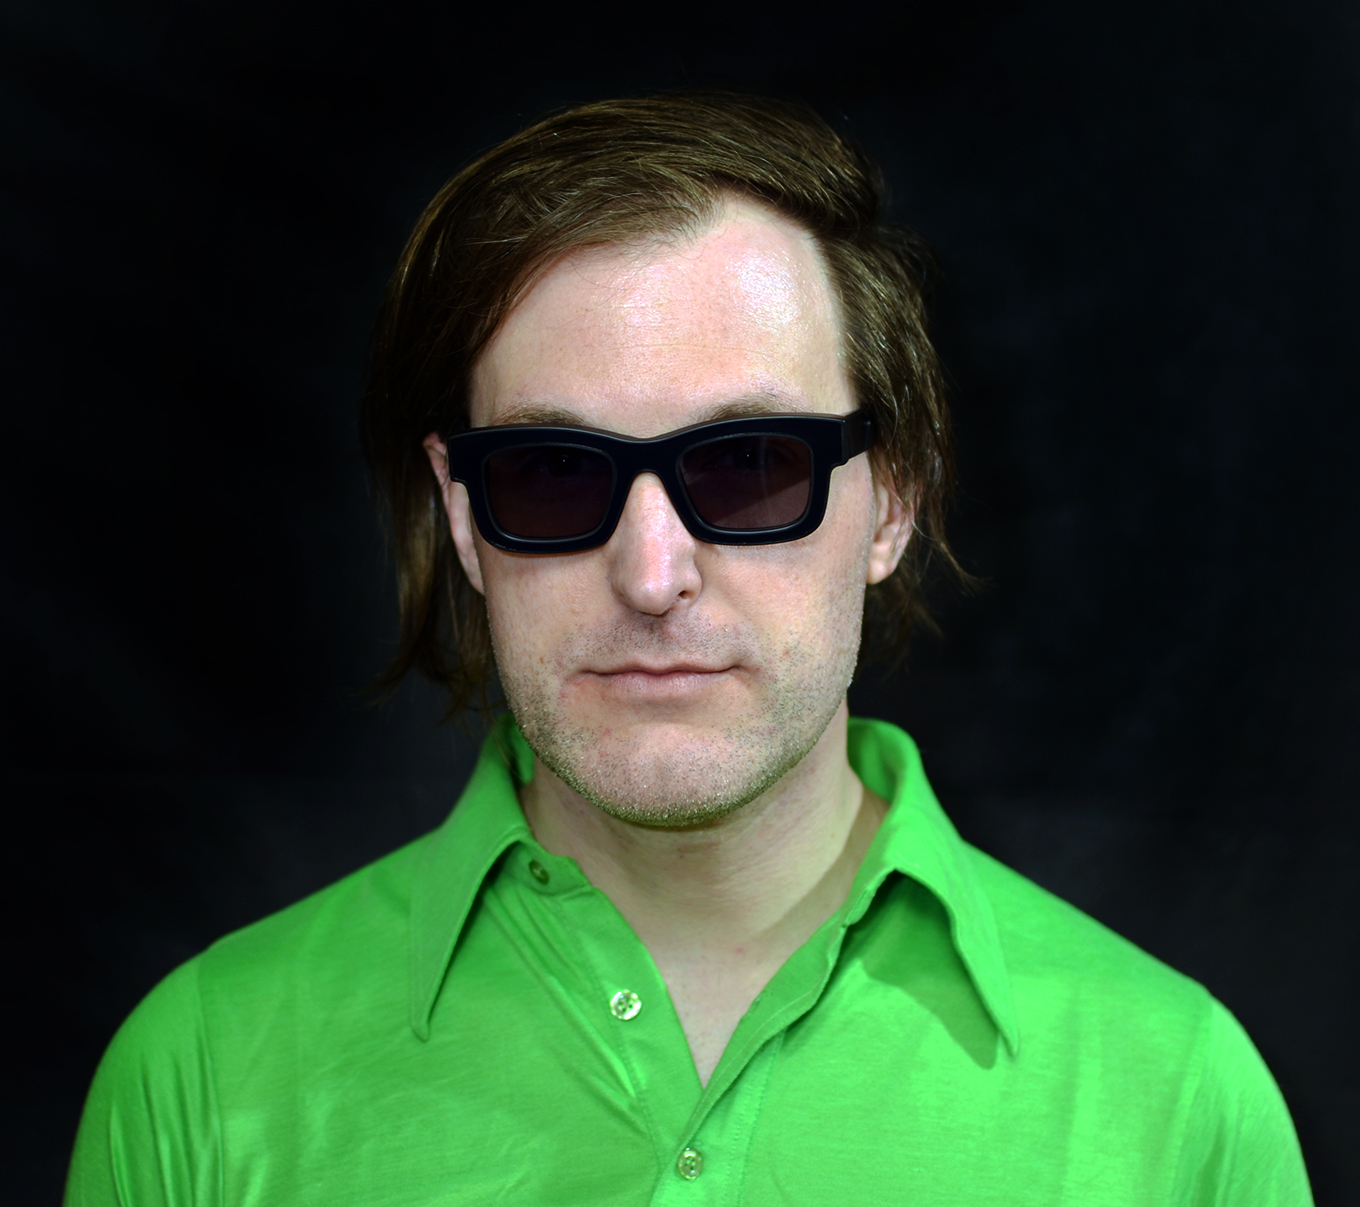 d-anti-facial-recognition-ir-mapping-sunglasses.jpg